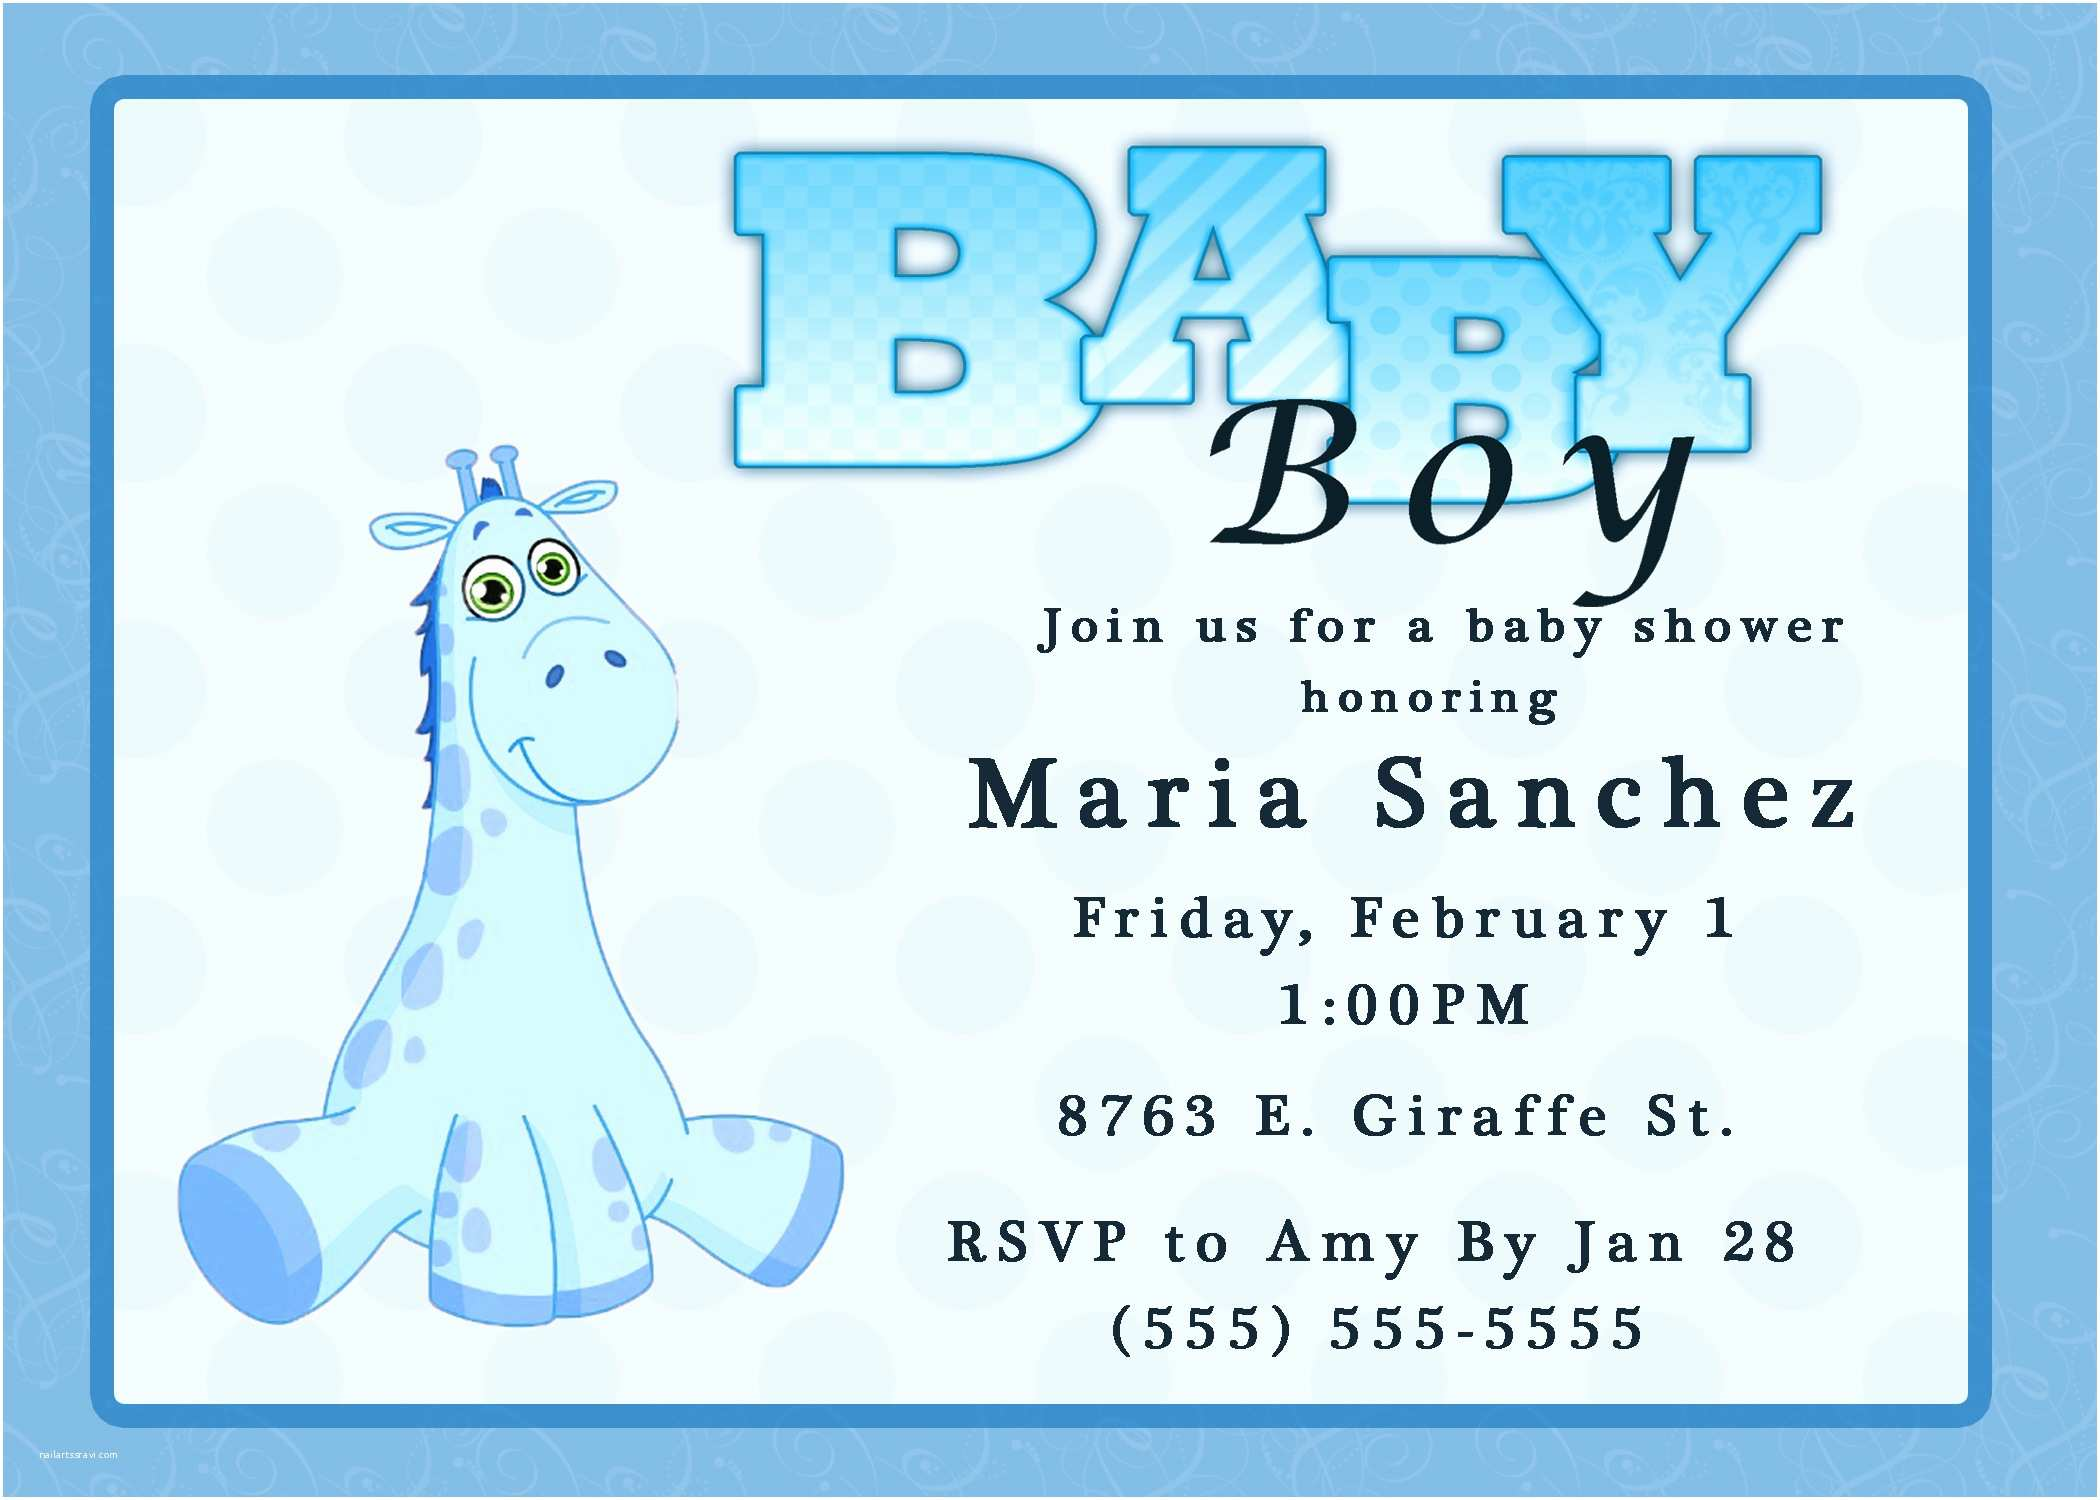 Baby Shower Invitation Wording For A Boy Baby Shower Invitations For